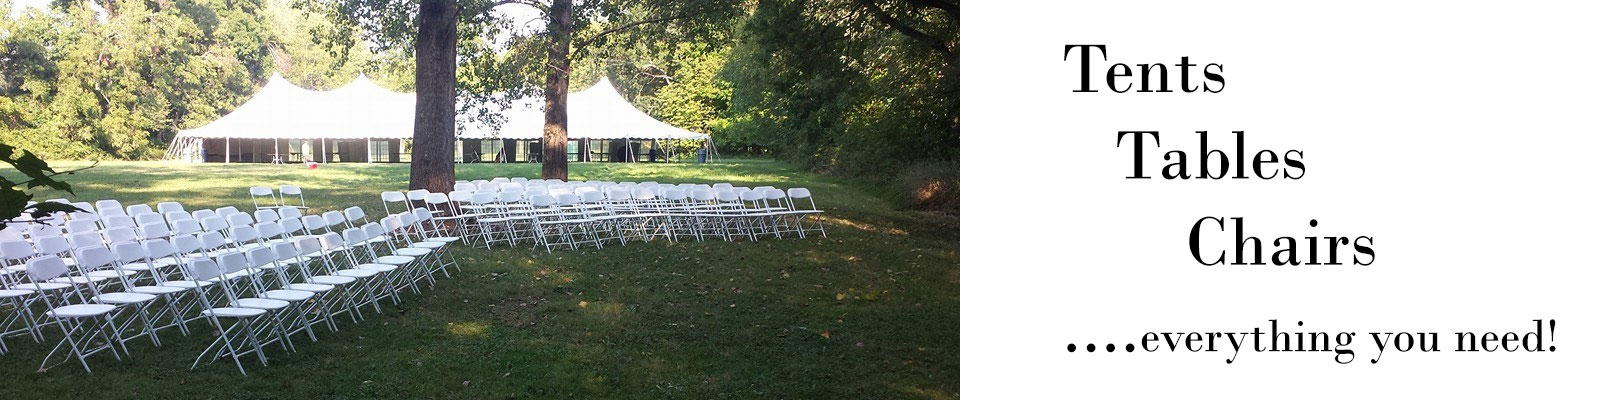 Tent rentals in Bucks and Montgomery Counties